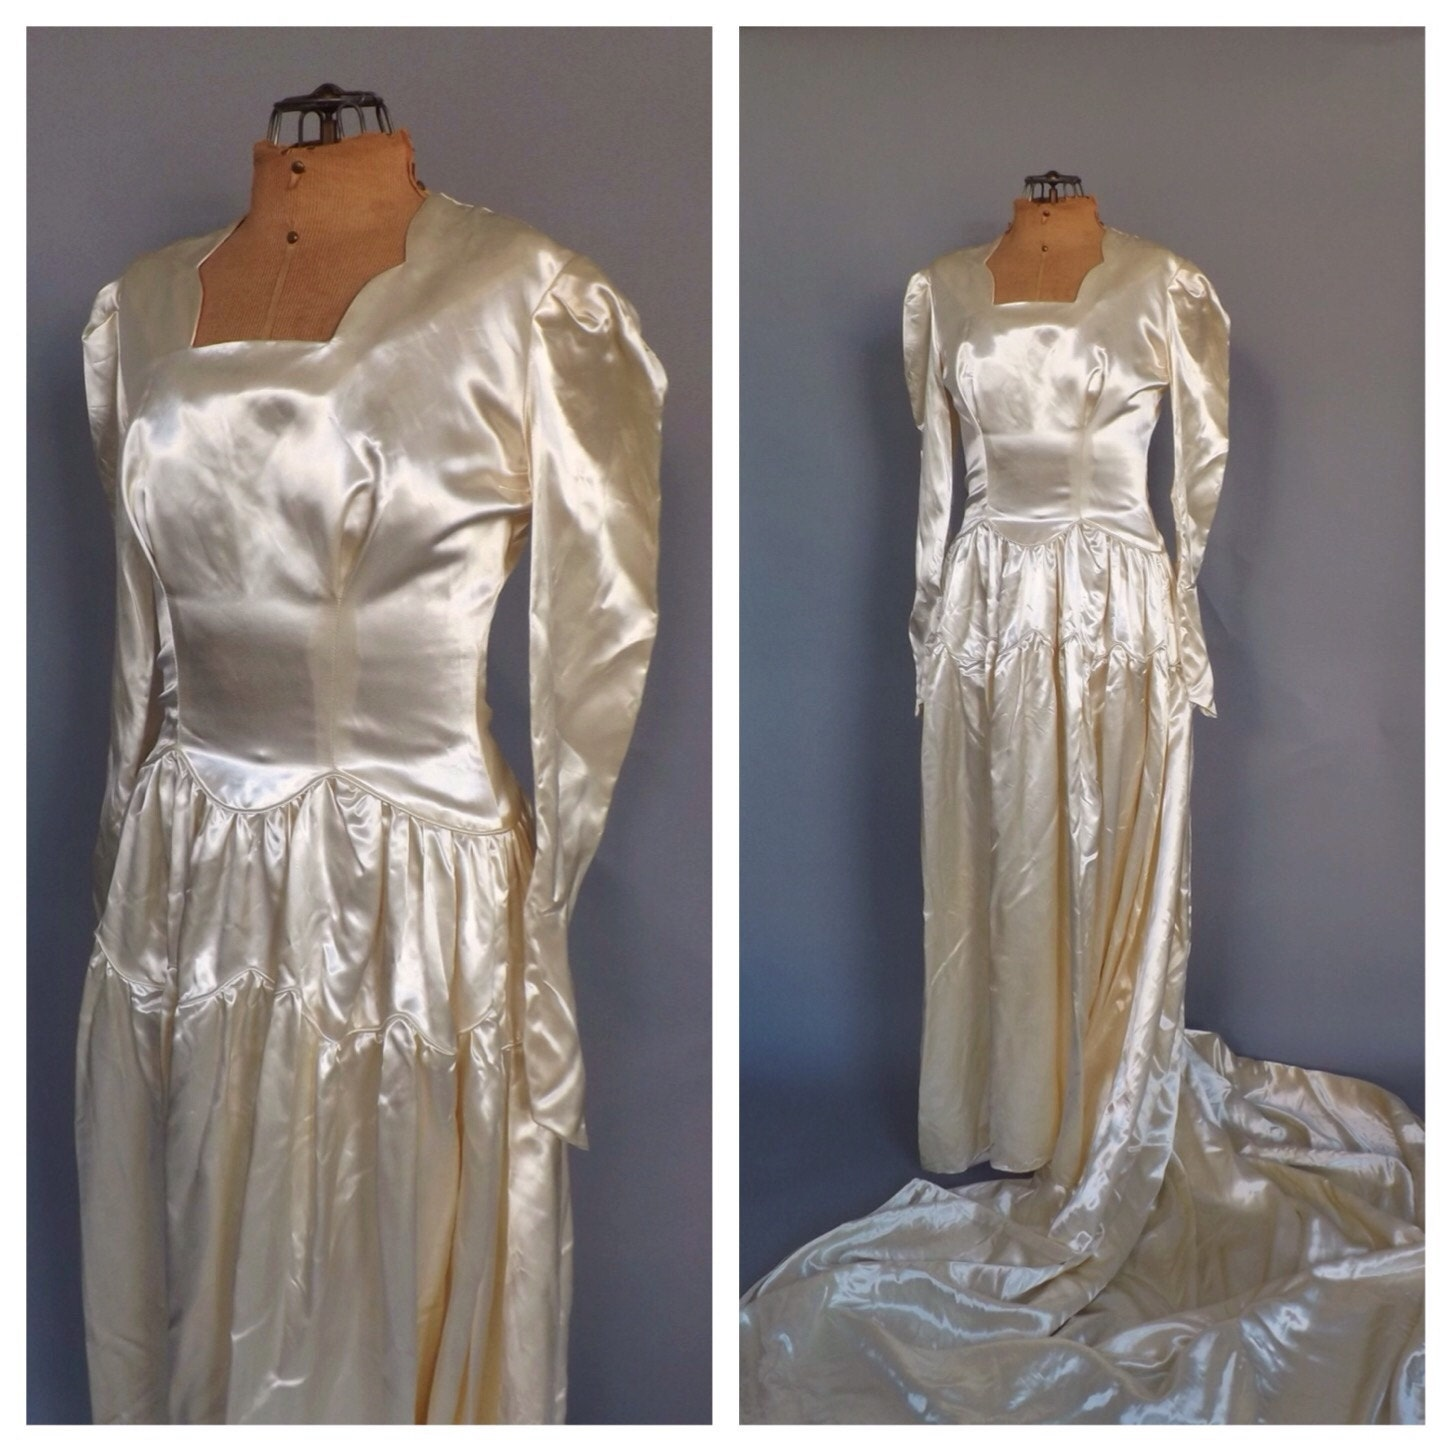 Vintage Wedding Dresses Etsy: Vintage 1940s Ivory White Satin Wedding Gown 30s Fitted Long